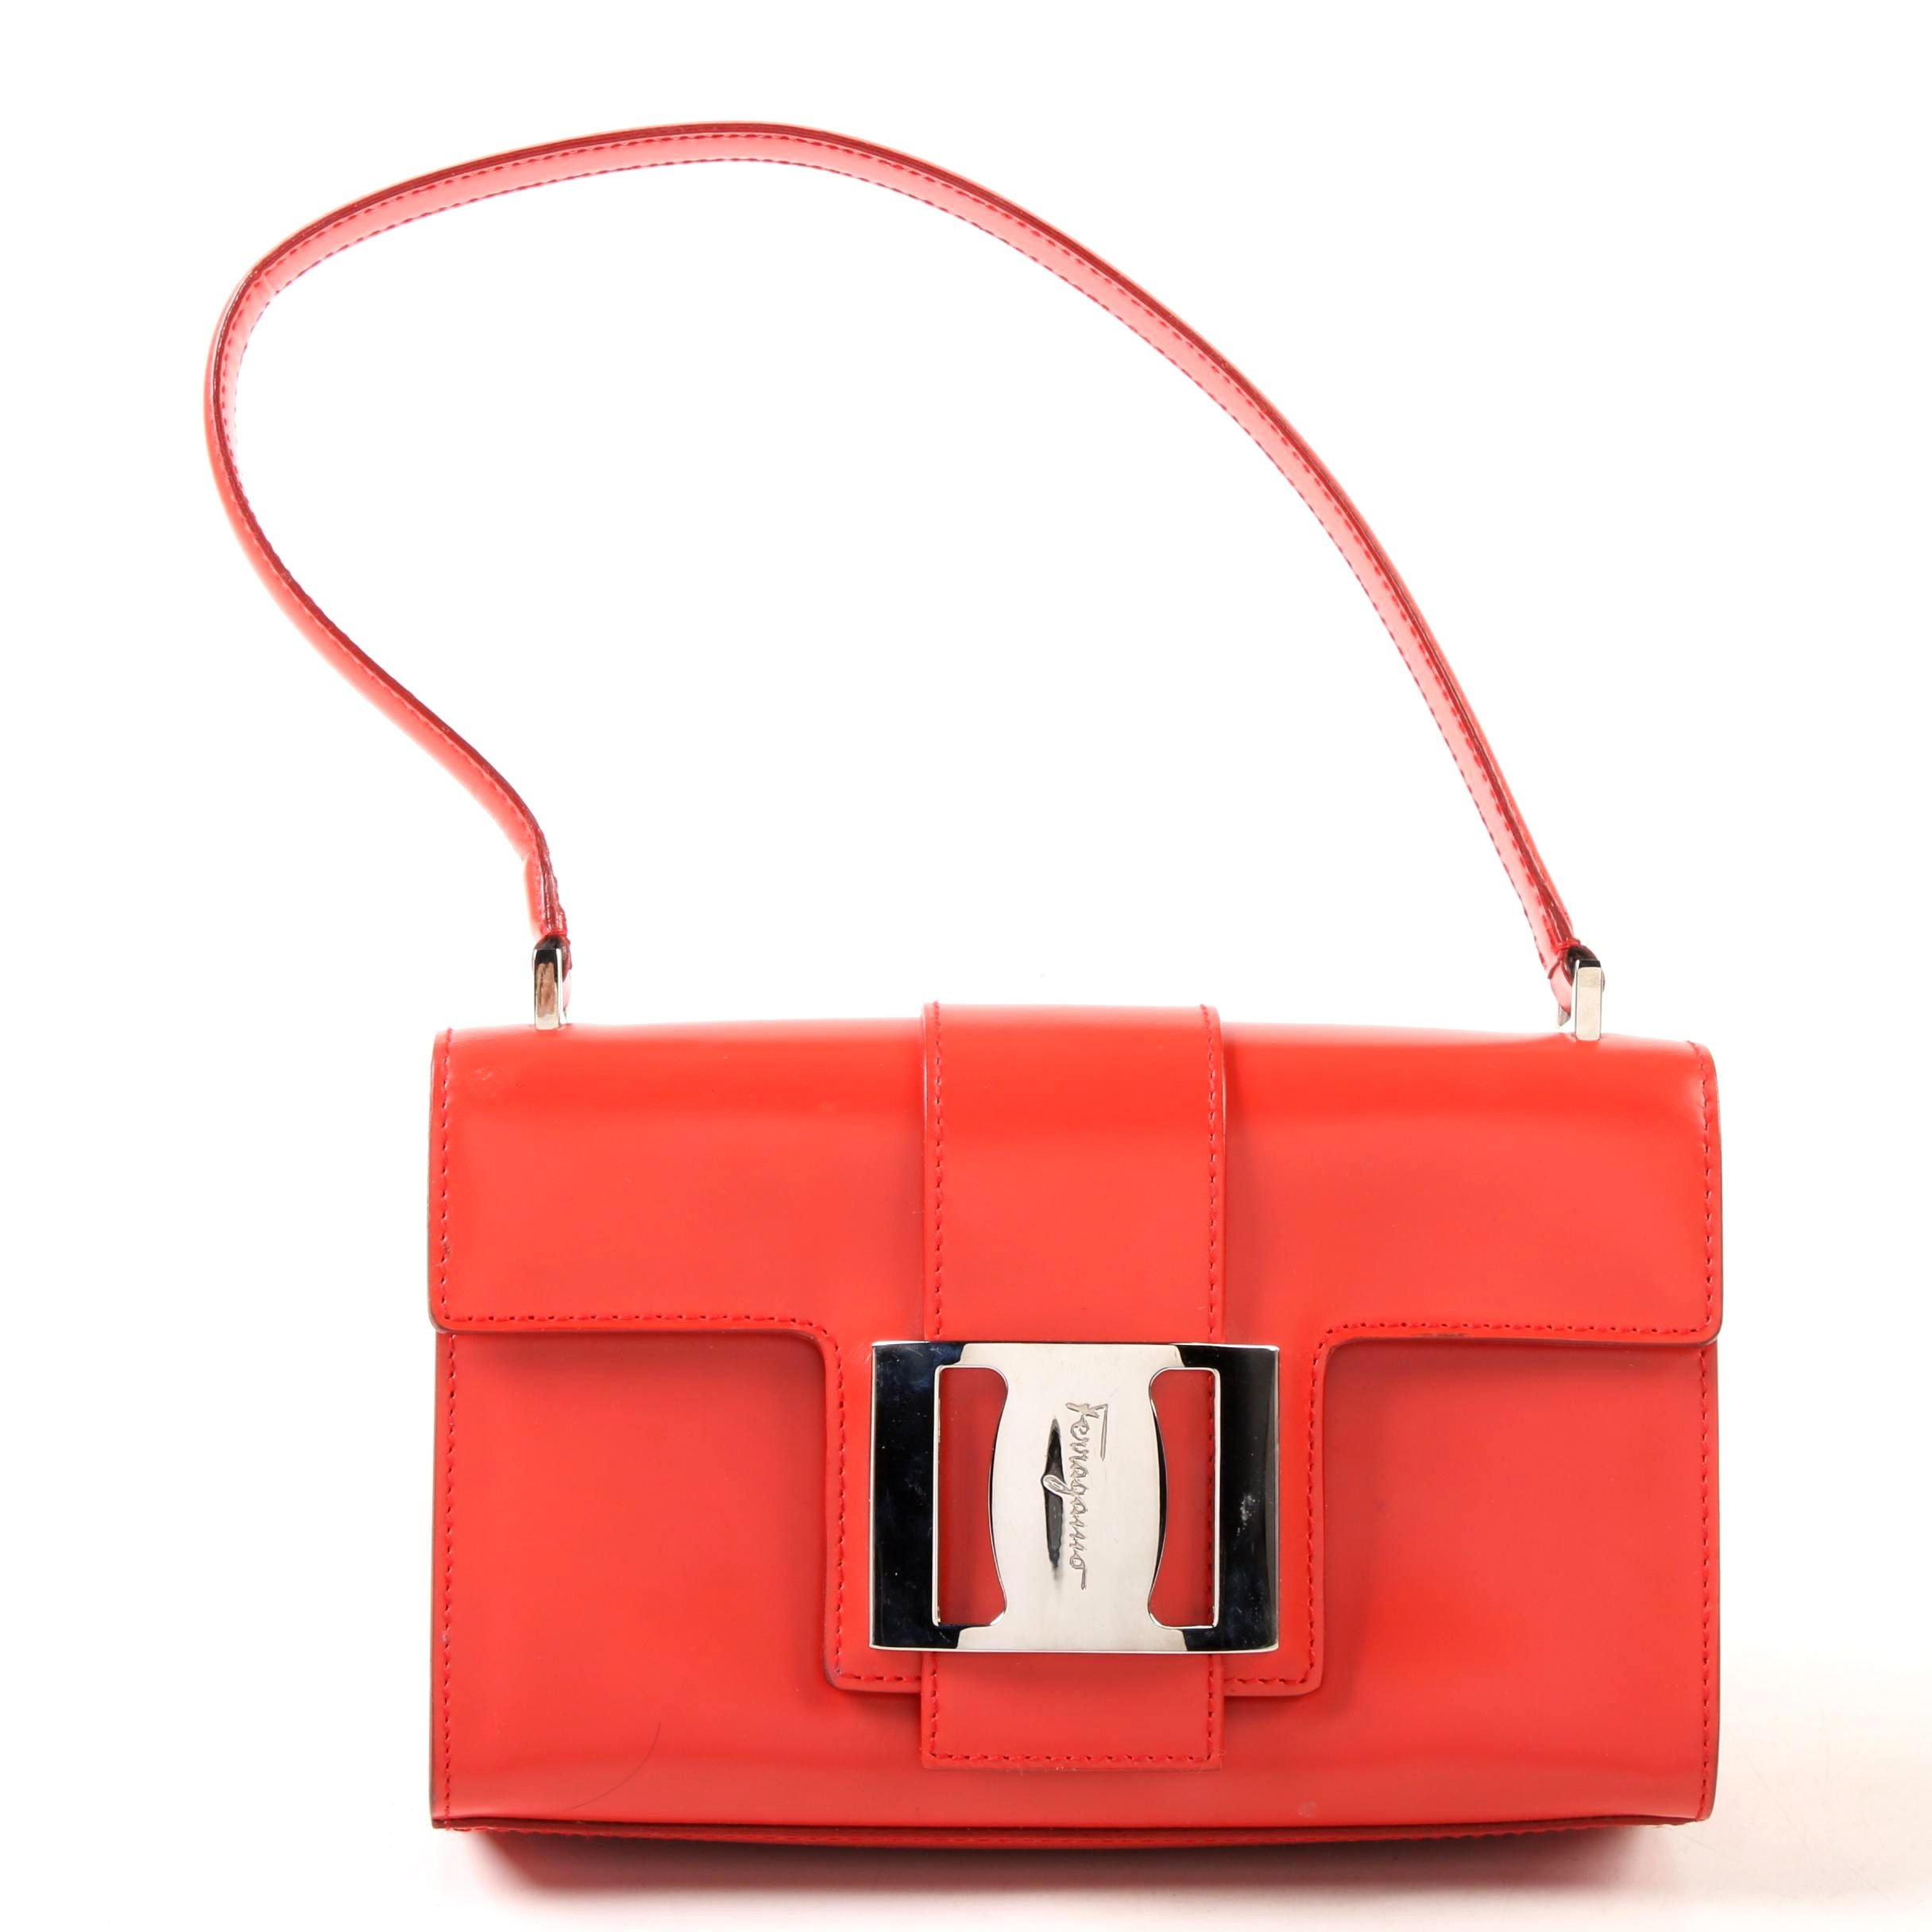 Salvatore Ferragamo Leather Buckle Flap Handbag